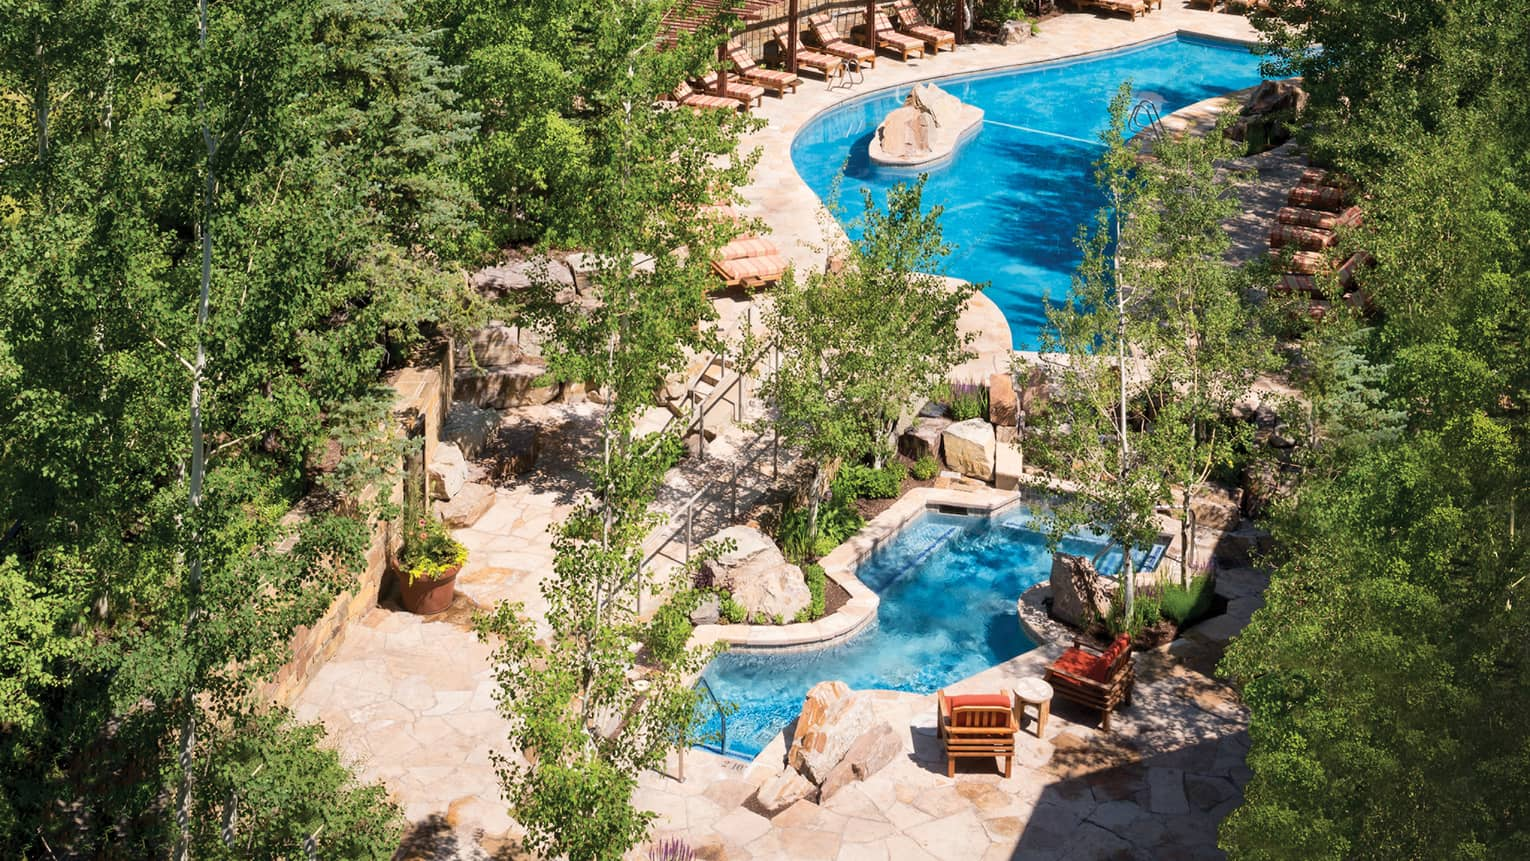 Aerial view of winding outdoor swimming pool, deck with lounge chairs surrounded by trees